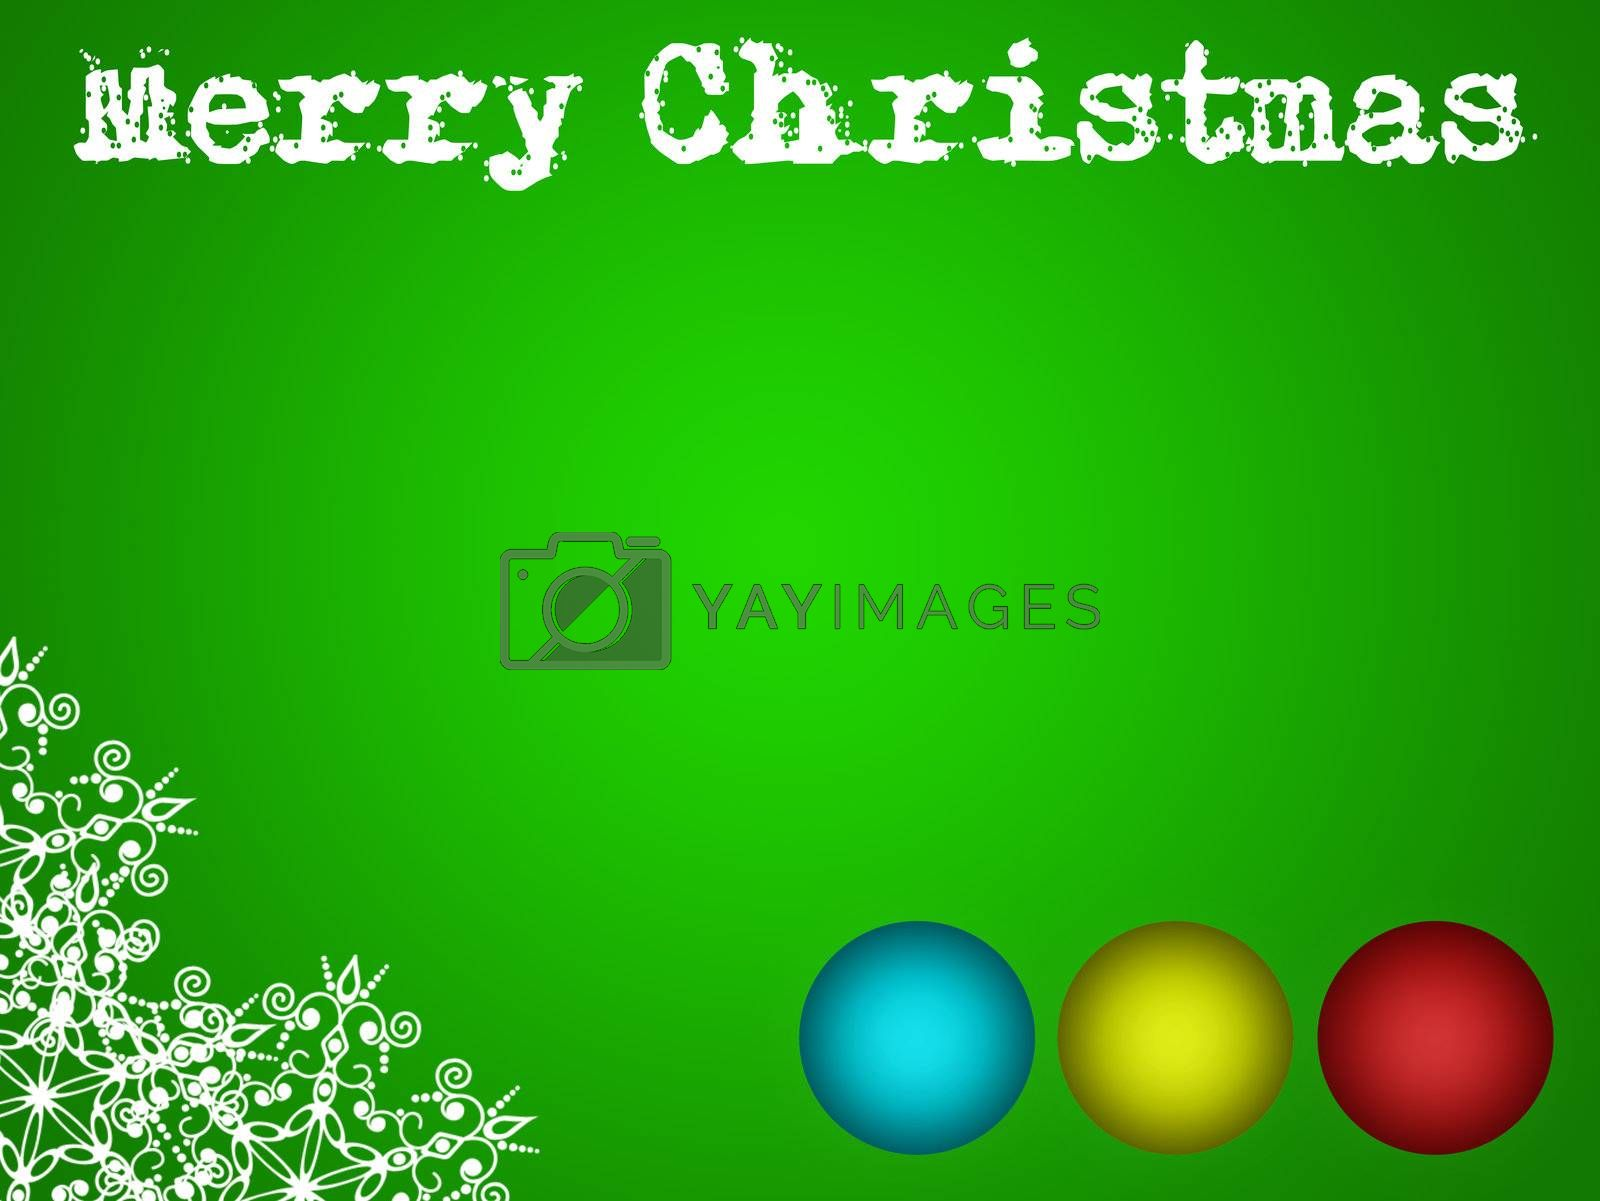 merry christmas card illustration with balls